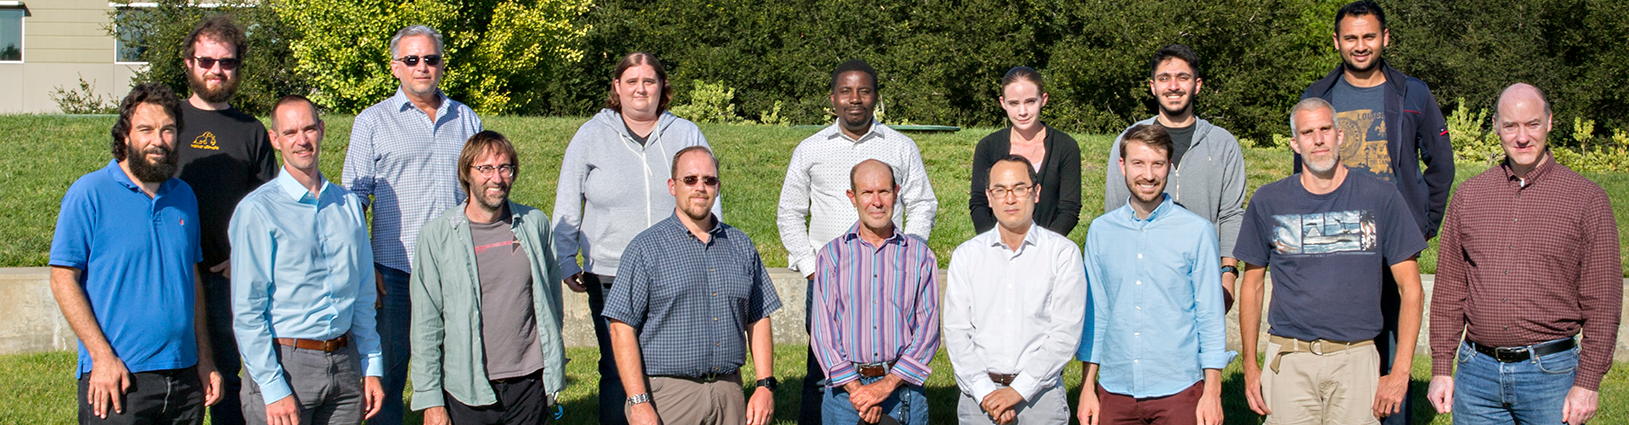 cognitive simulation team photo